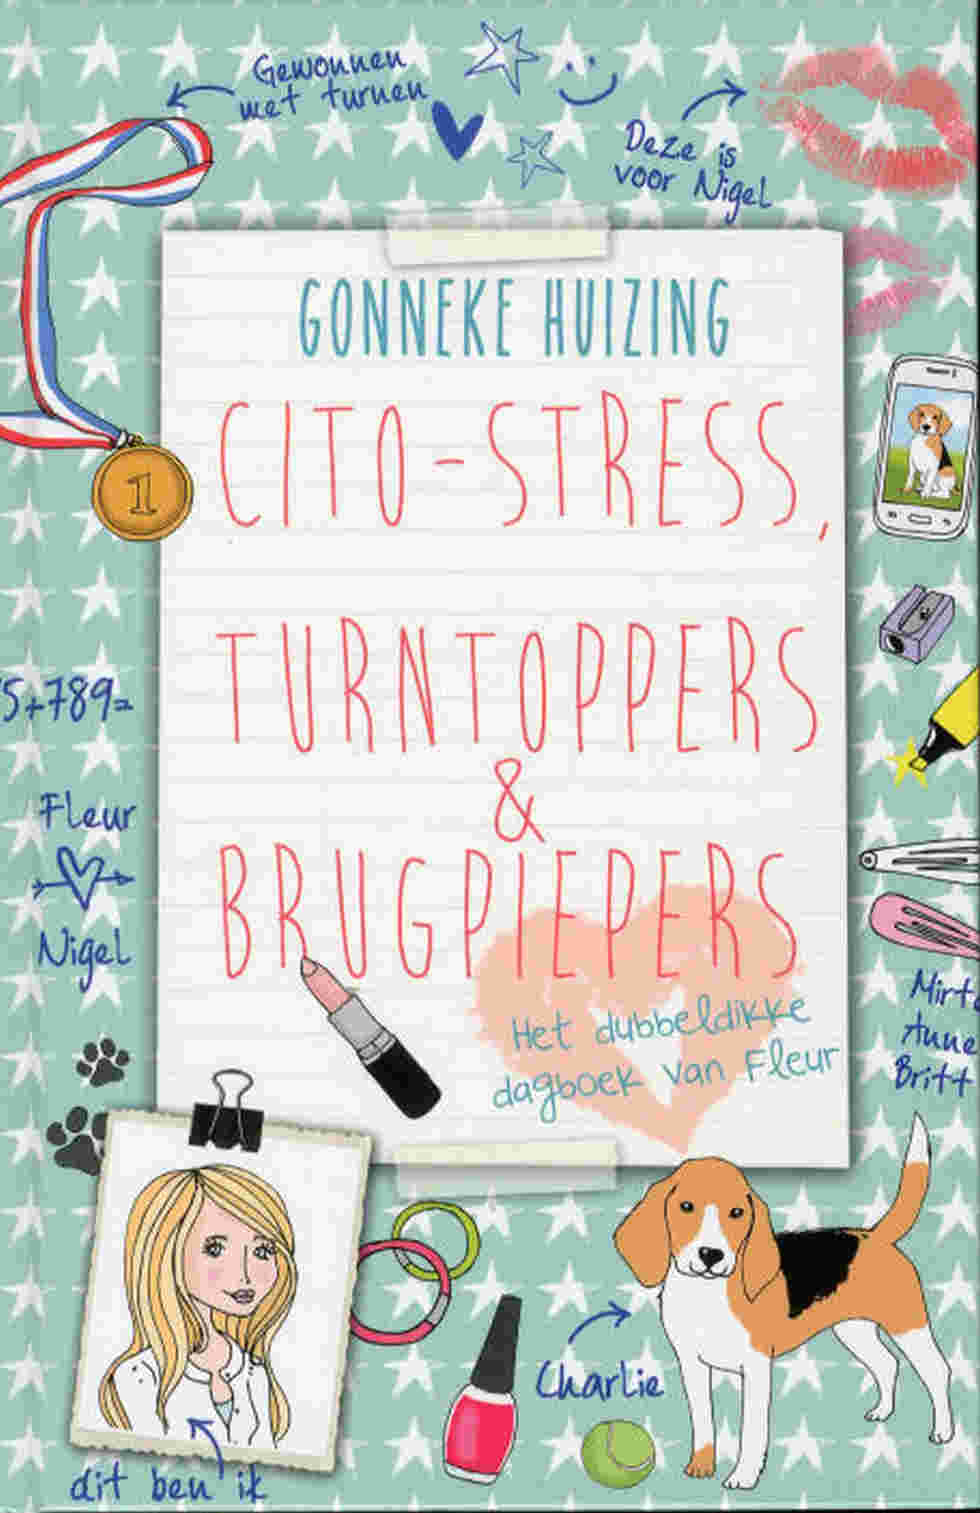 Cito-stress, turntoppers & brugpiepers